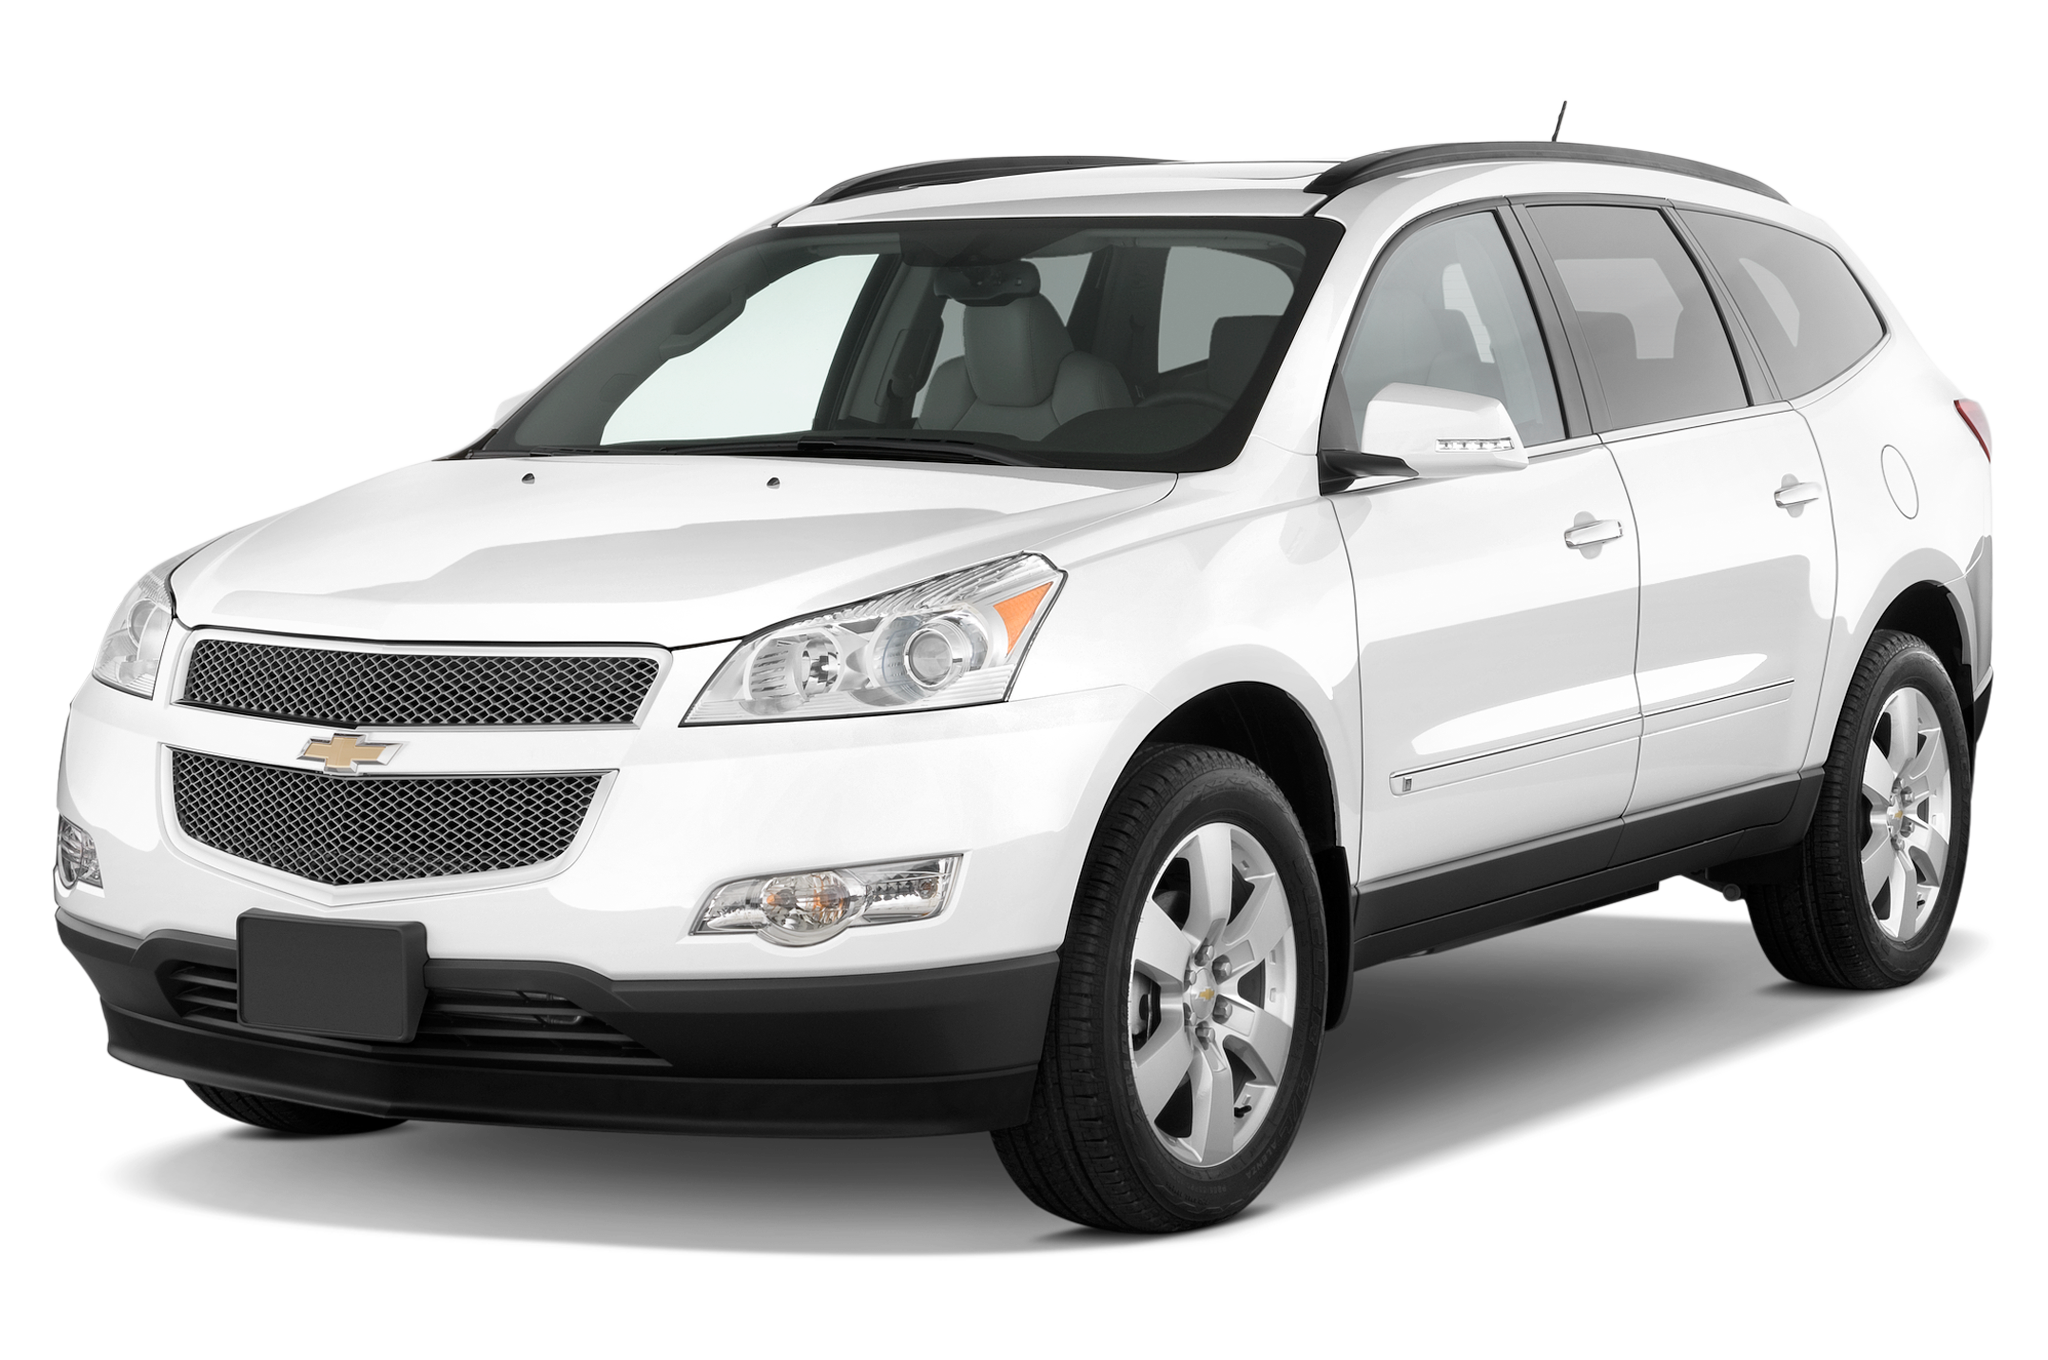 2012 chevrolet traverse ltz awd specs and features msn autos. Black Bedroom Furniture Sets. Home Design Ideas